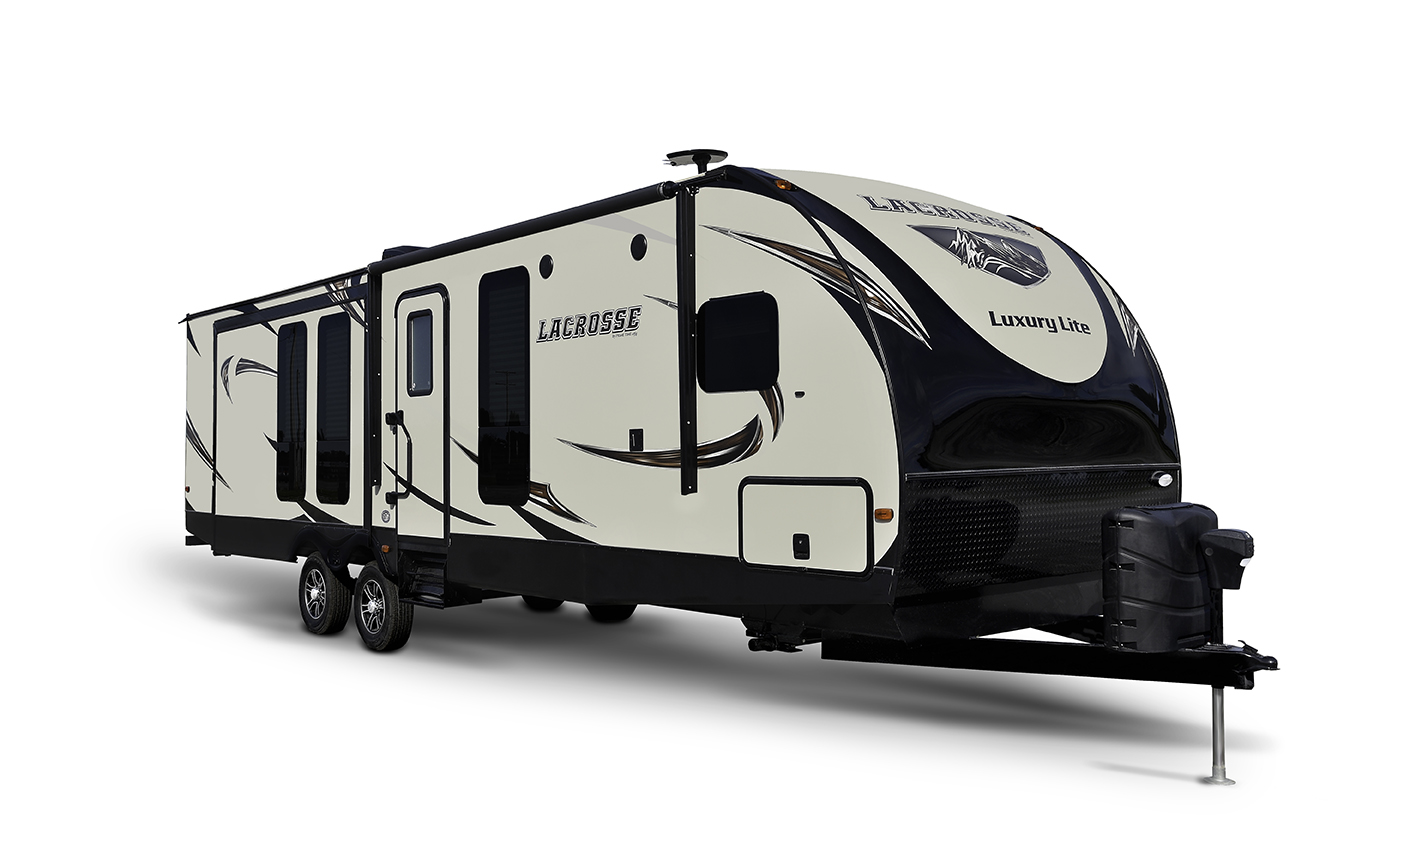 Prime Time RV LaCrosse 3299SE with king bed